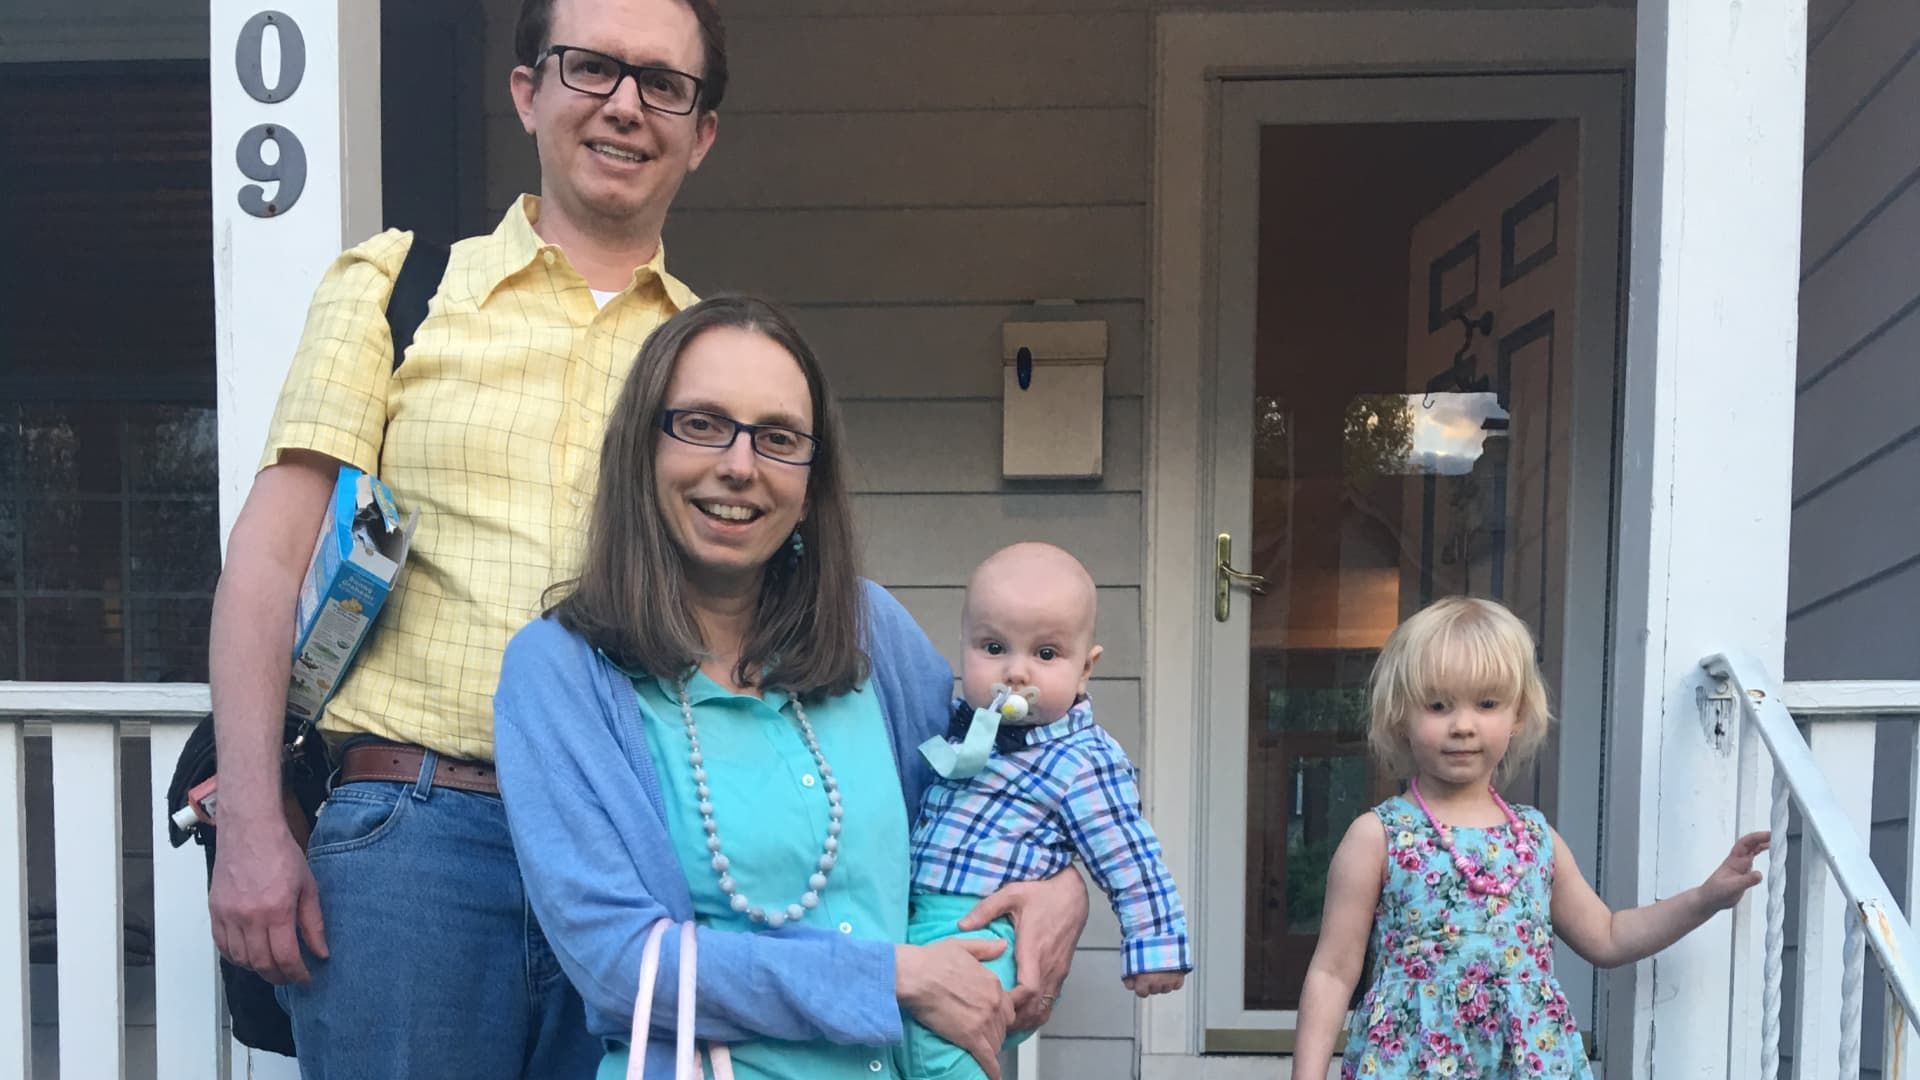 Stay-at-home dad Chris Hughes and his family.